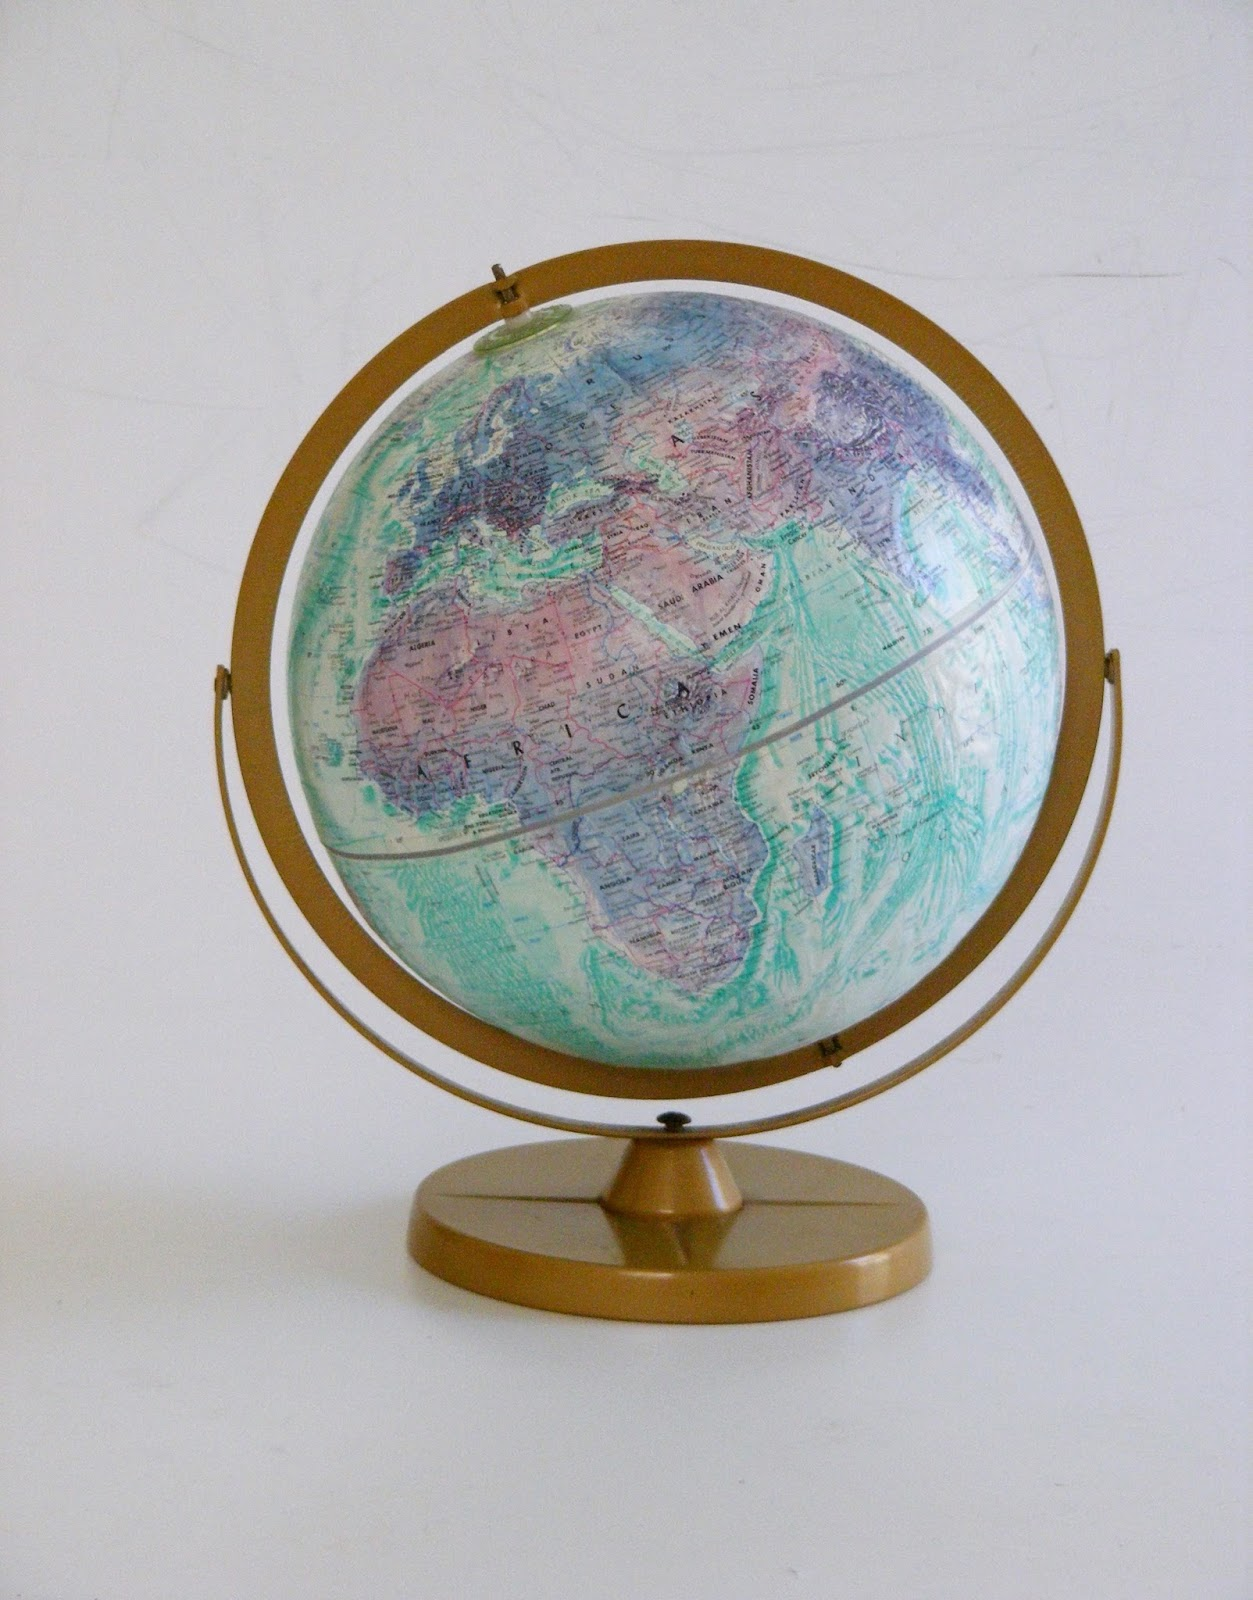 a vintage replogle world series ocean globe diameter 31cm height 41cm r1150 call us on 021 448 2755 or email us on infoatvampfurniture co za